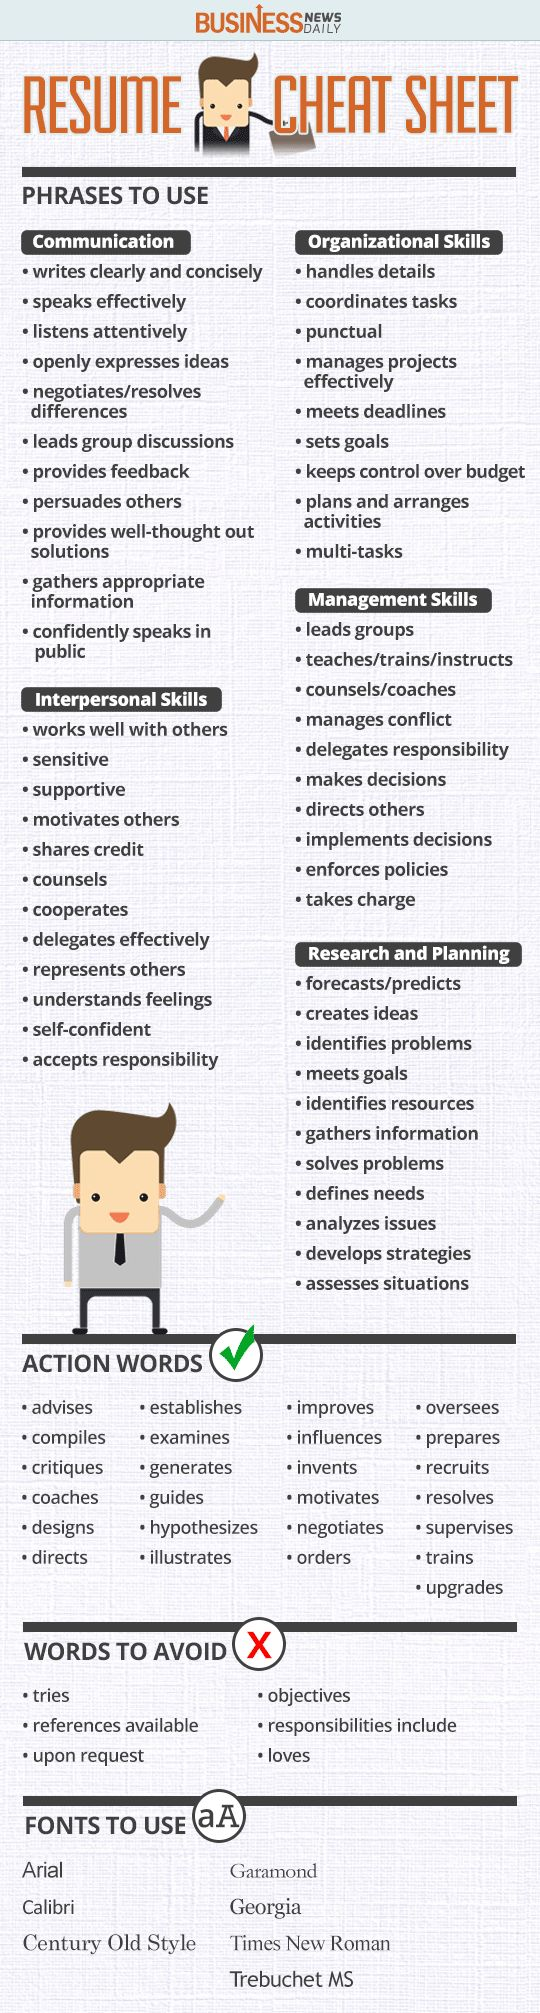 Opposenewapstandardsus  Stunning  Ideas About Resume On Pinterest  Cv Format Resume Cv And  With Exquisite Resume Cheat Sheet Infographic Andrews Almost Done With A Complete Unit On Employment Which With Beauteous Help Me Write A Resume Also How To Get Resume Template On Word In Addition Food And Beverage Resume And How To Make A Resume On Microsoft Word  As Well As Restaurant Resume Skills Additionally Pharmacy Technician Resumes From Pinterestcom With Opposenewapstandardsus  Exquisite  Ideas About Resume On Pinterest  Cv Format Resume Cv And  With Beauteous Resume Cheat Sheet Infographic Andrews Almost Done With A Complete Unit On Employment Which And Stunning Help Me Write A Resume Also How To Get Resume Template On Word In Addition Food And Beverage Resume From Pinterestcom